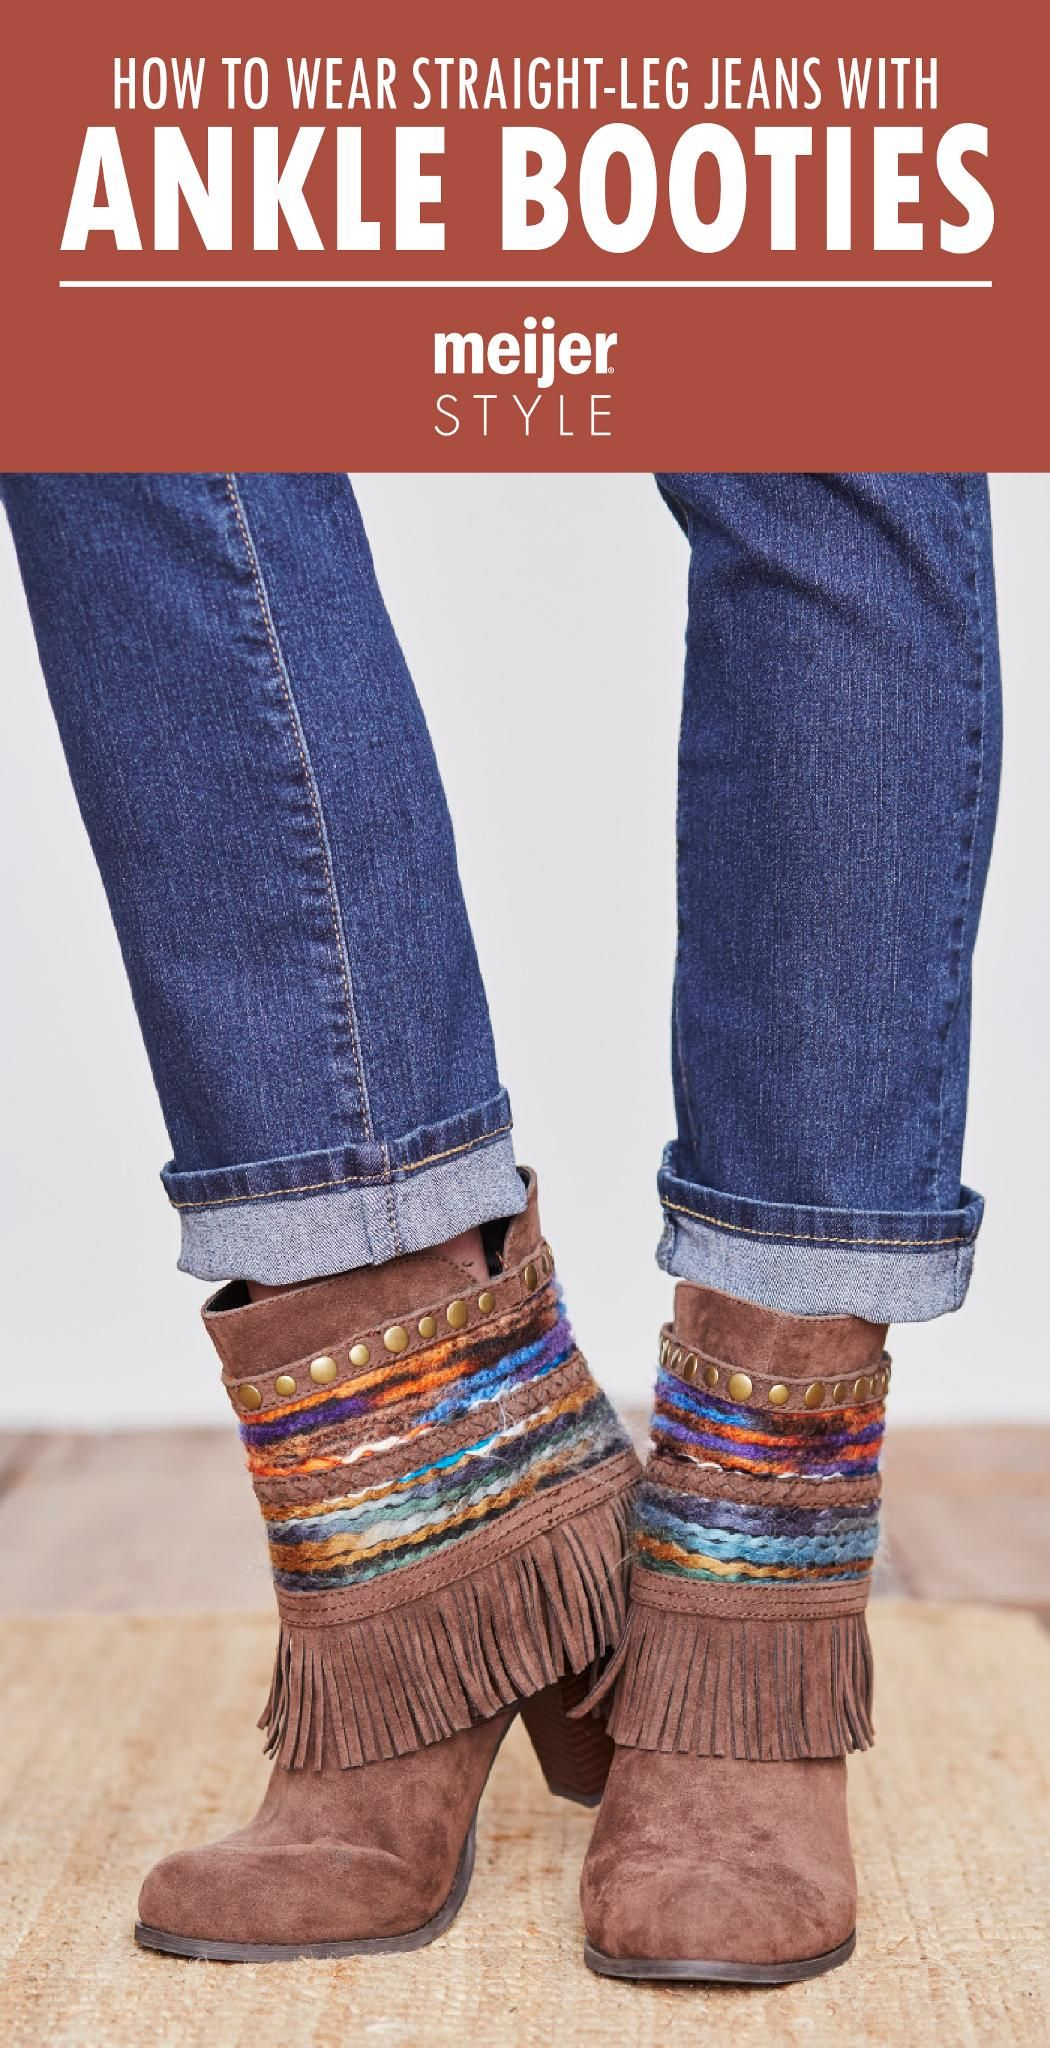 031aedaf38 The best ways to wear straight leg jeans with trendy ankle booties this  fall